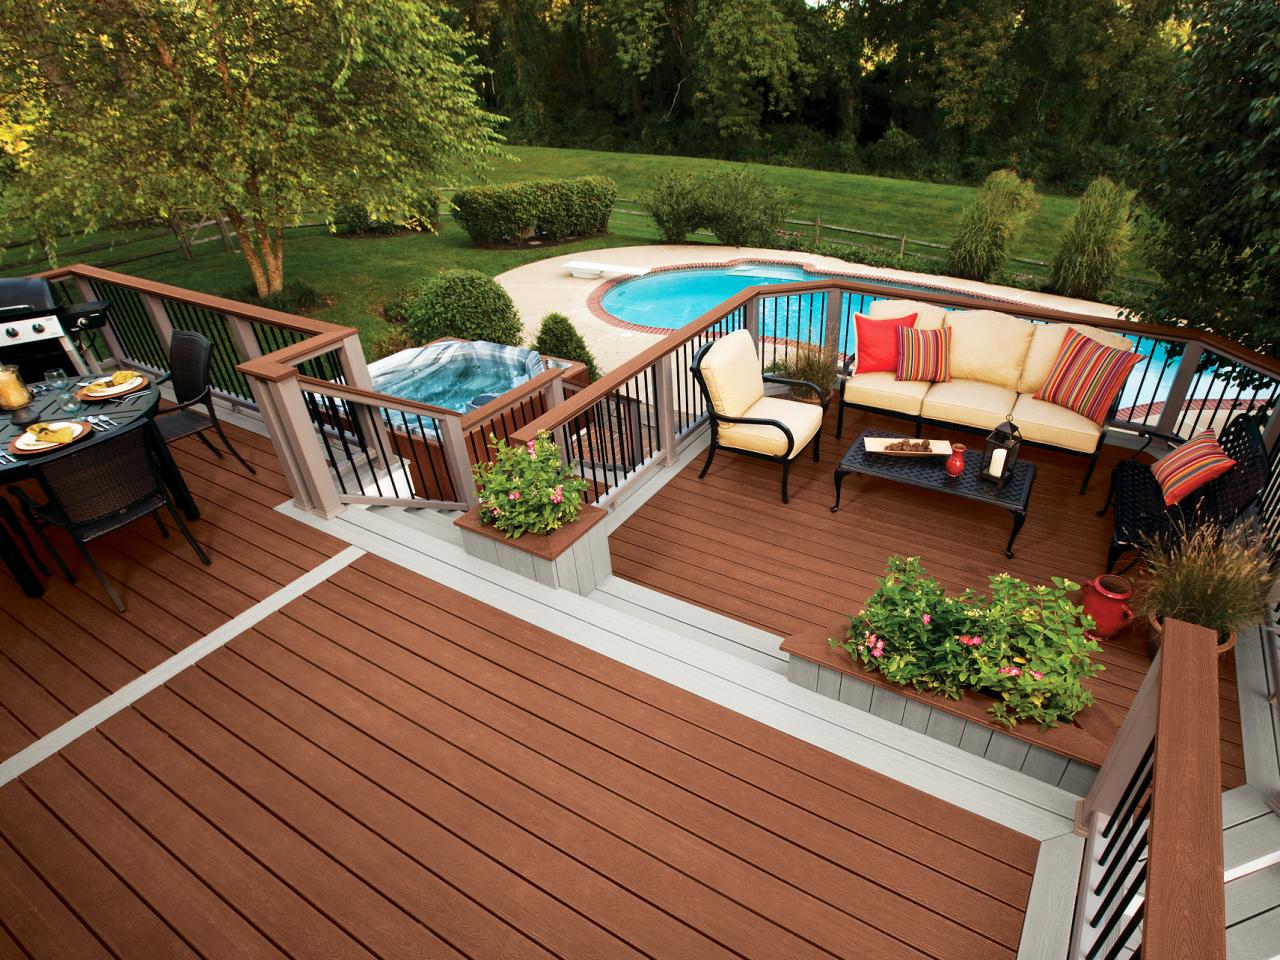 This modish deck features a small dining set, a sofa set with a center table, and some plants for additional colors.